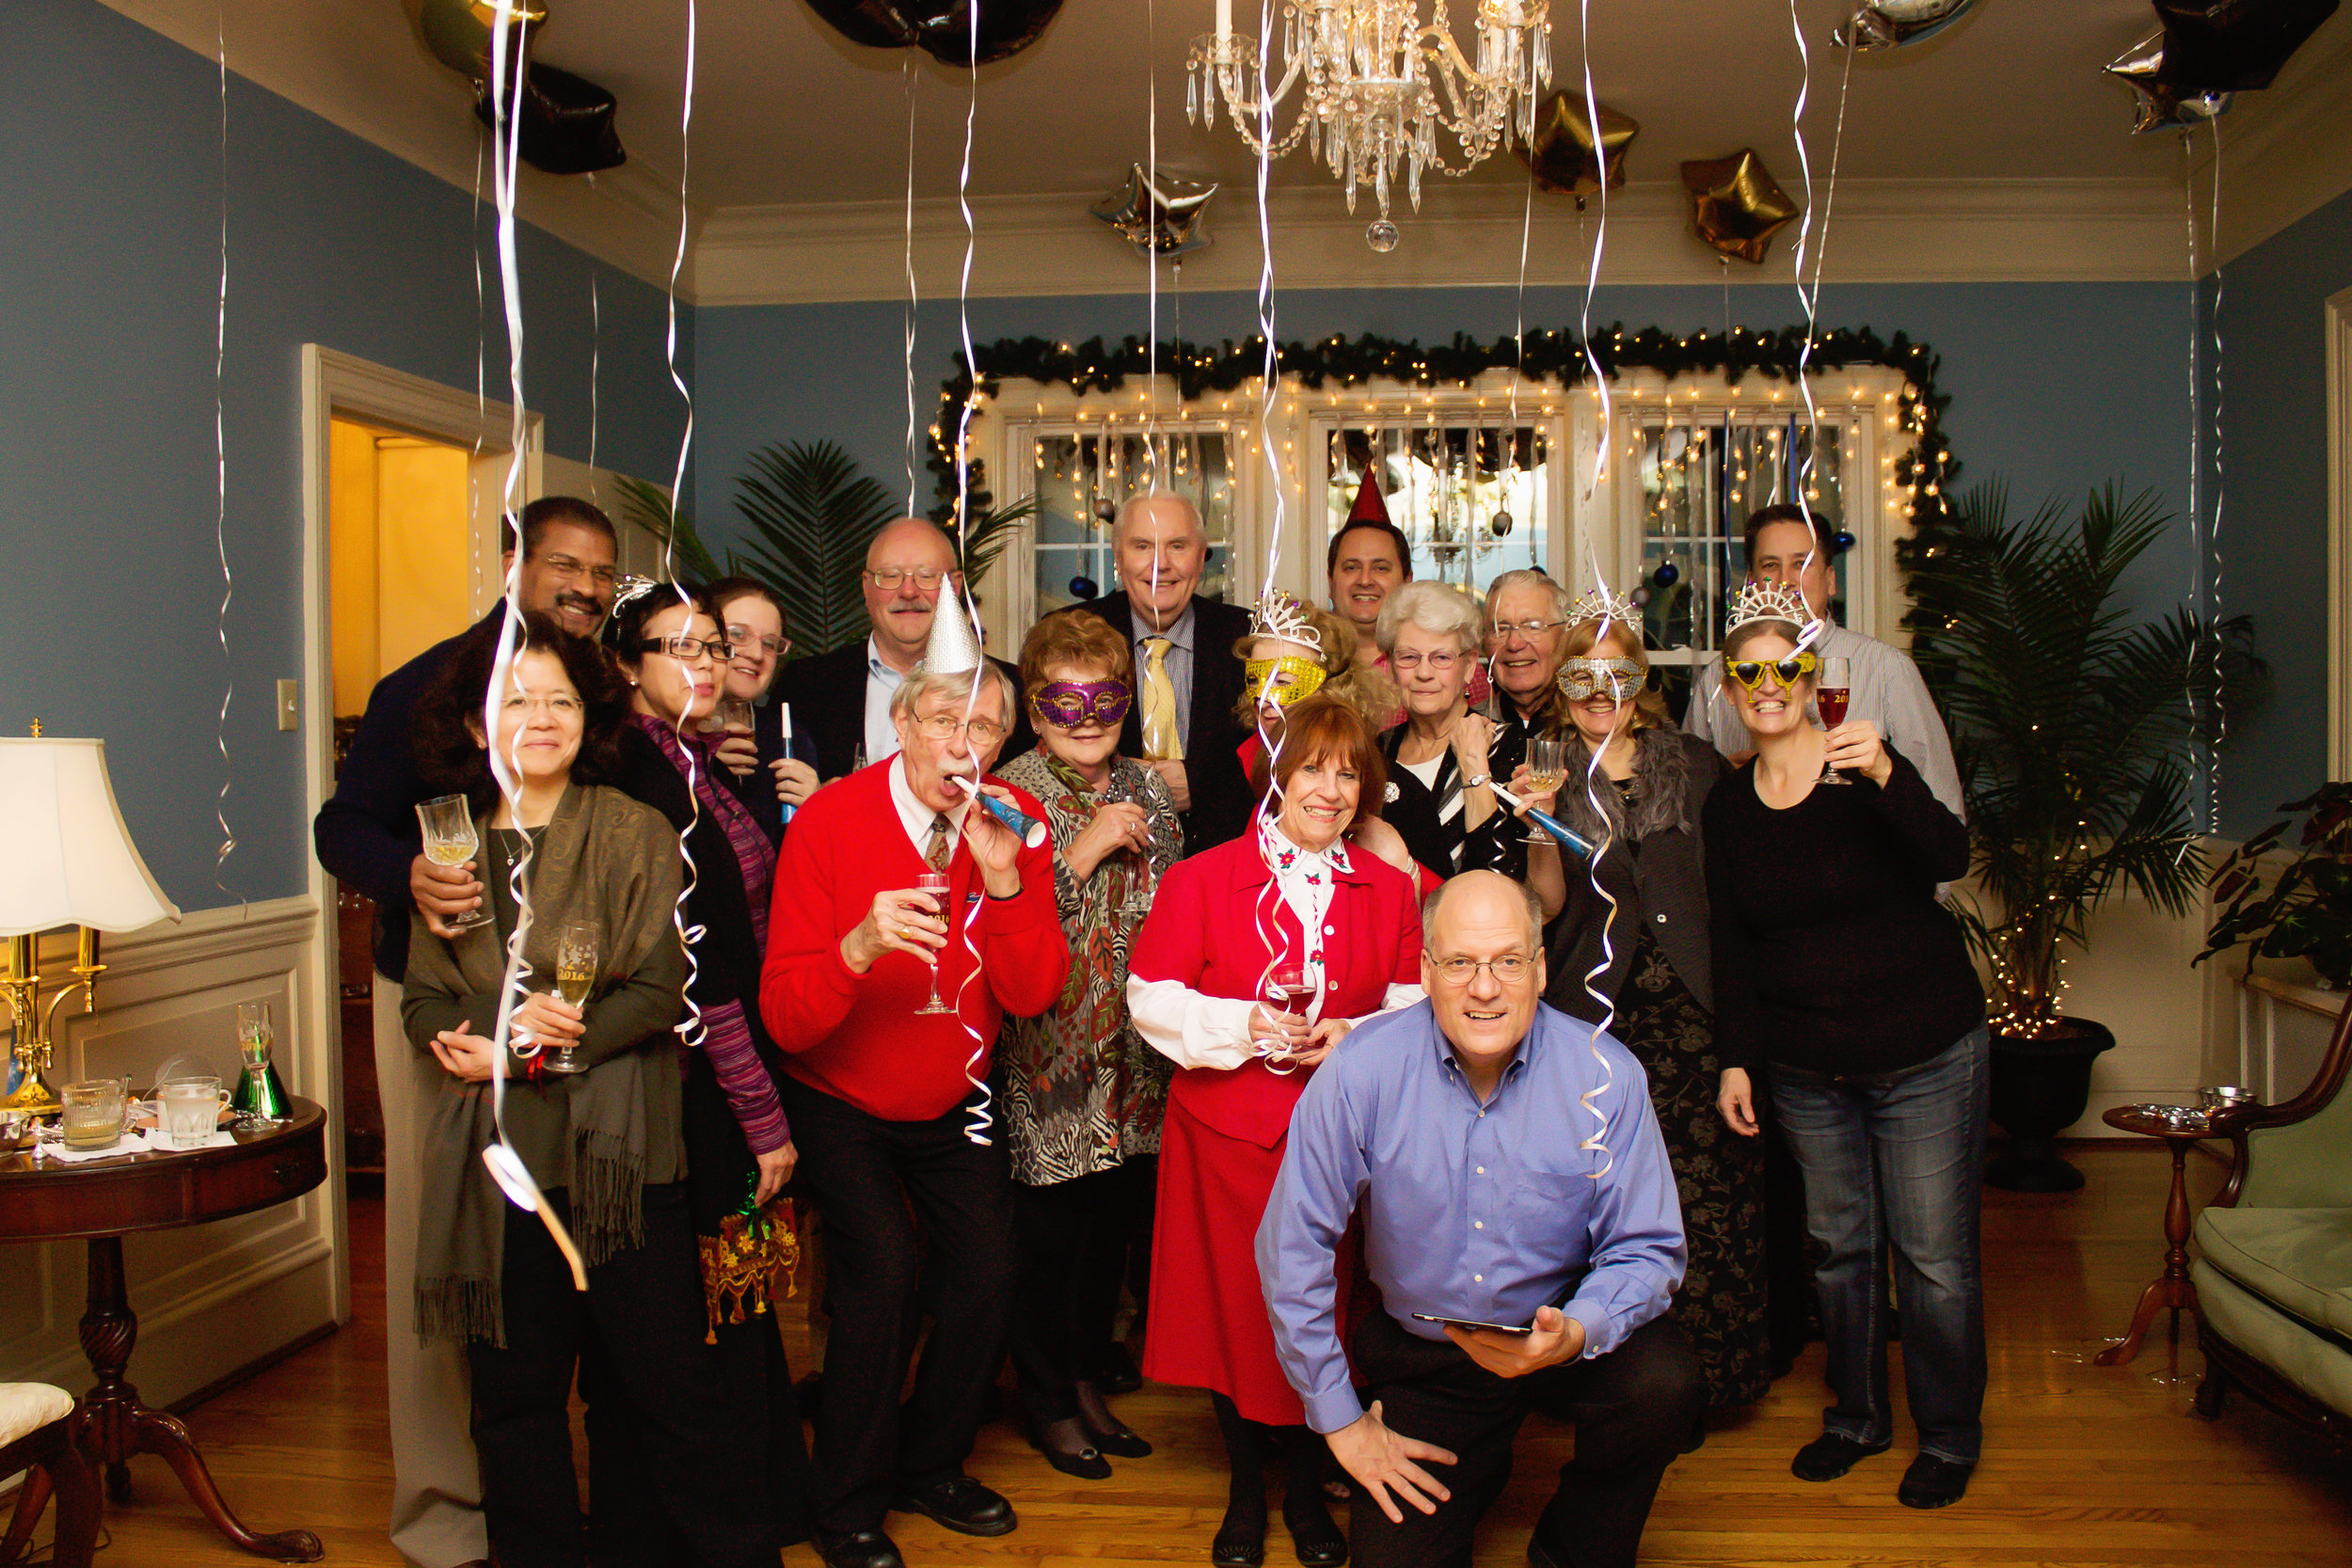 hill-crest-virginia-bed-breakfast-new-year-event-group-picture